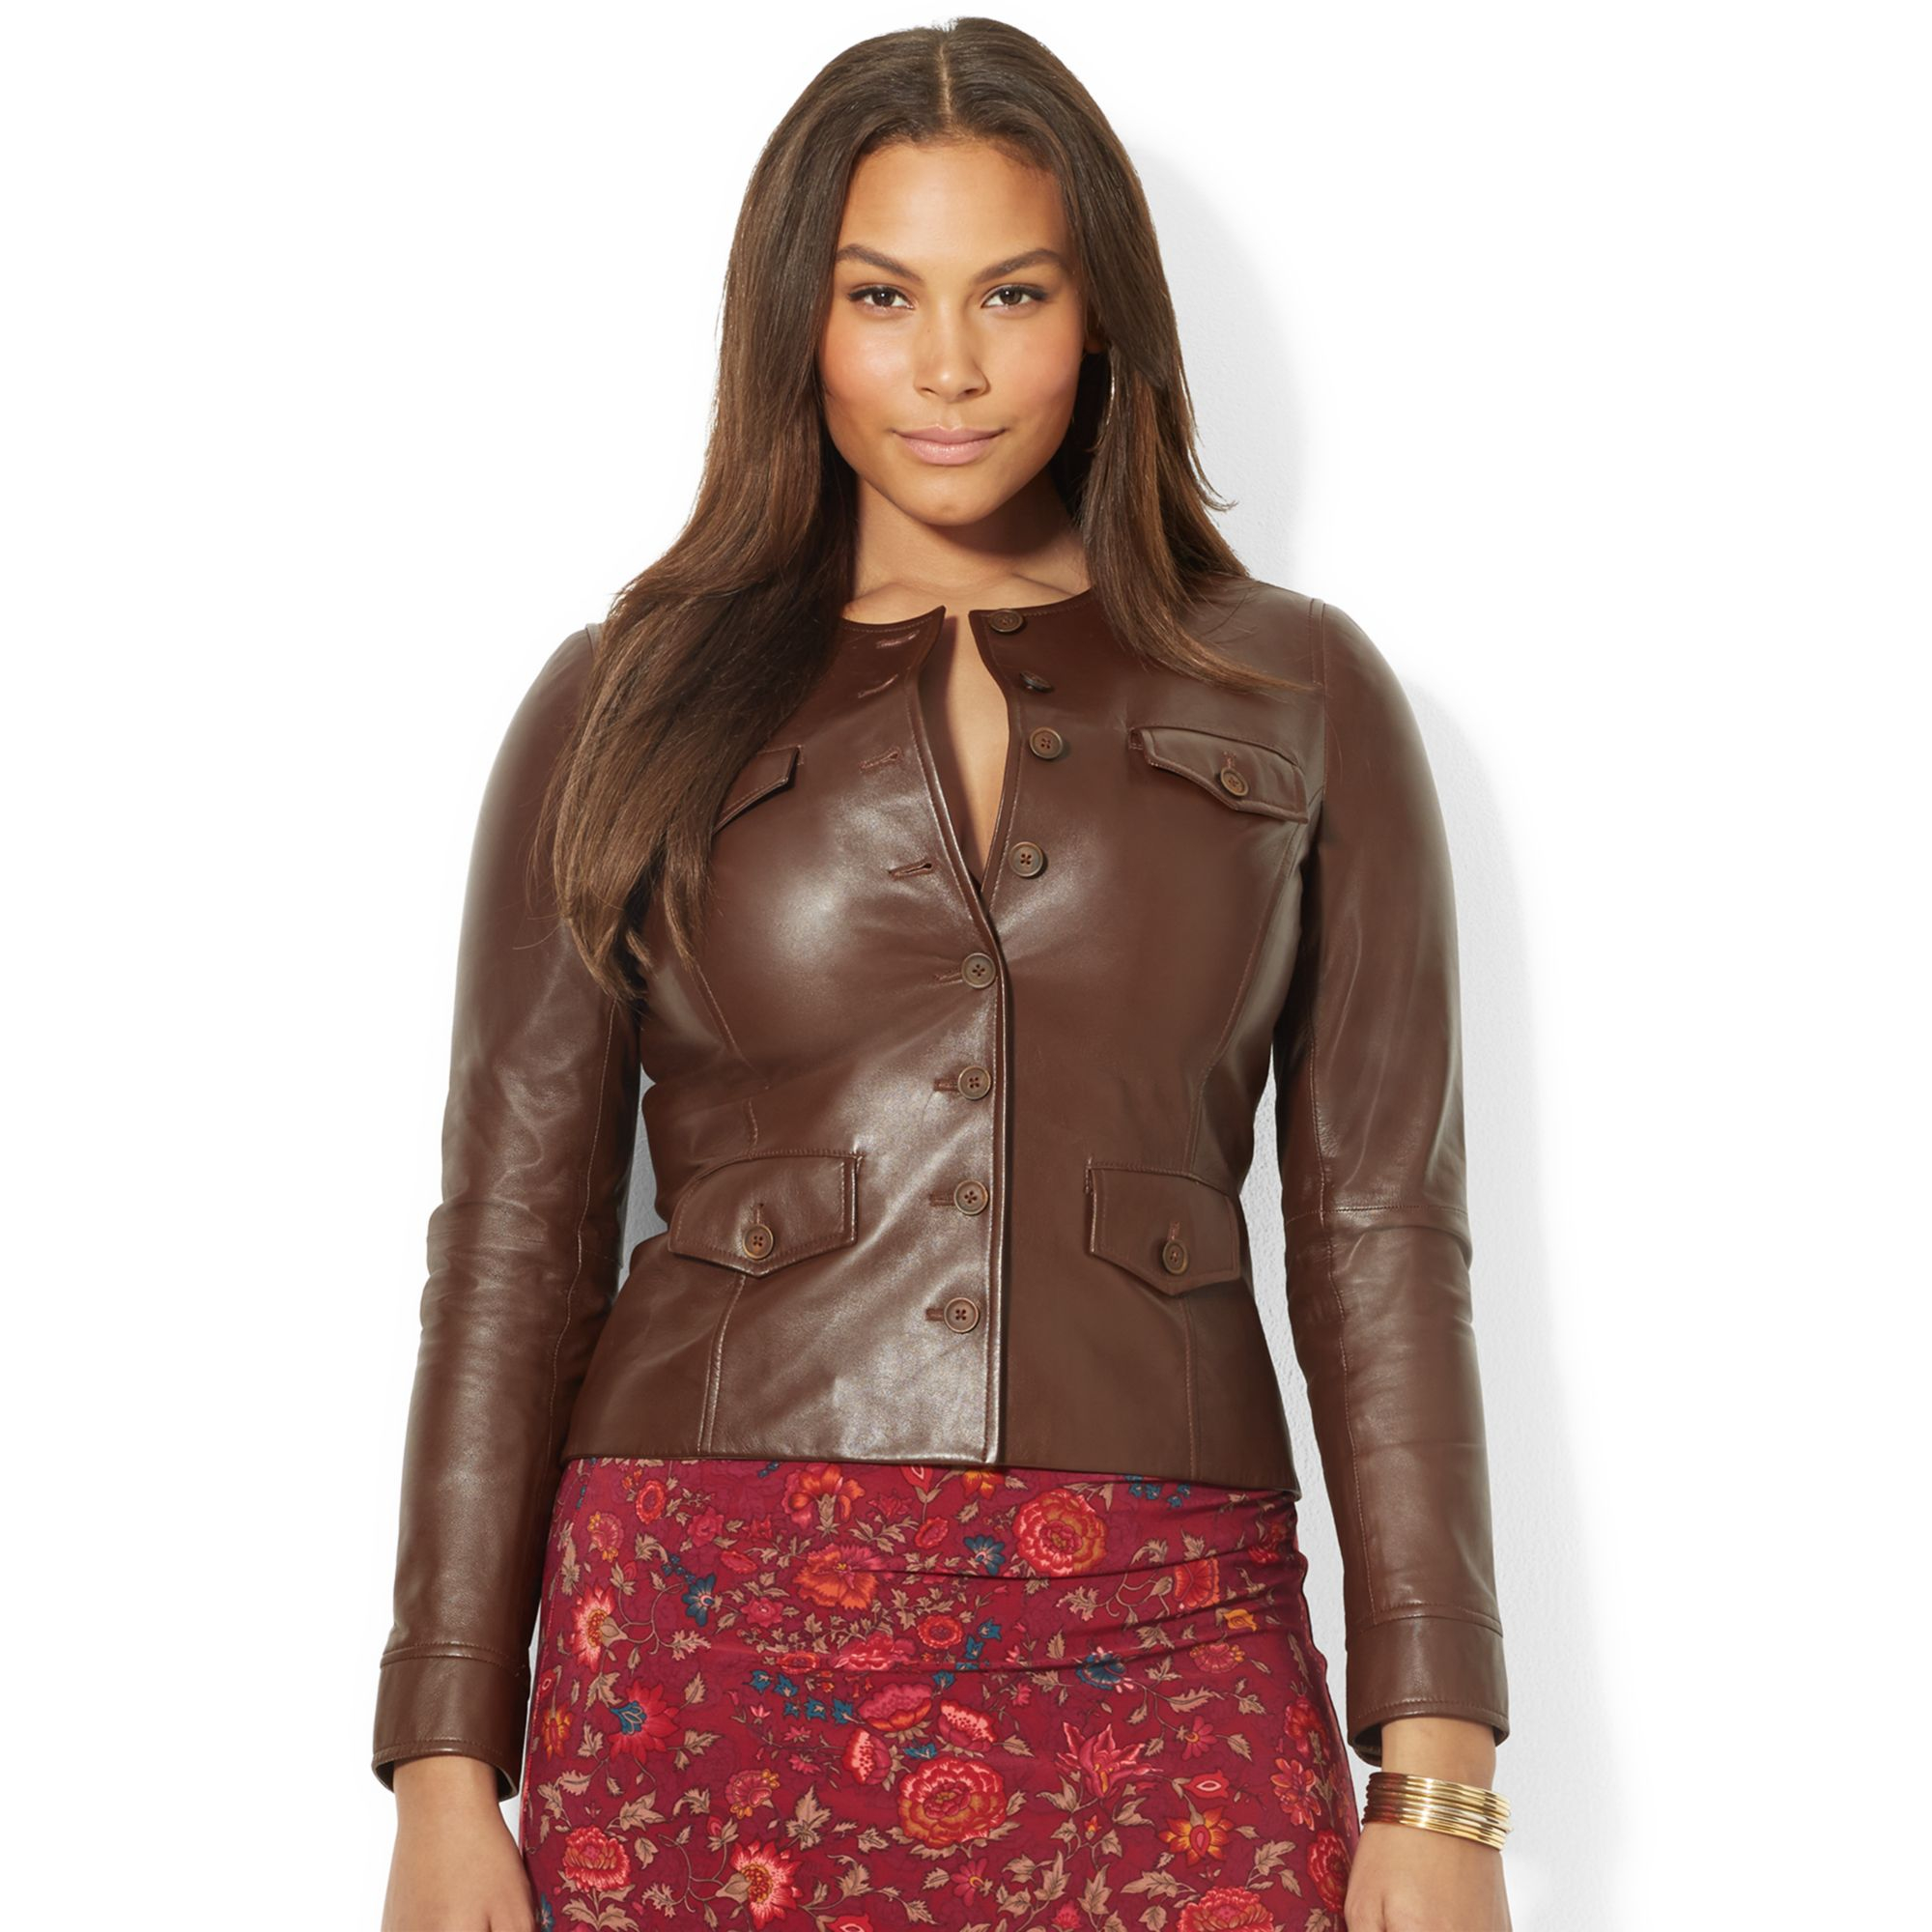 Plus Size Jackets & Blazers. Plus size jackets and plus size blazers are available in sizes 12 to 26 at Addition Elle, your plus size fashion shop. Find faux leather jackets, peplum vests, denim jackets, sleeveless blazers, asymmetrical vests, long vests, cropped jackets, and more.